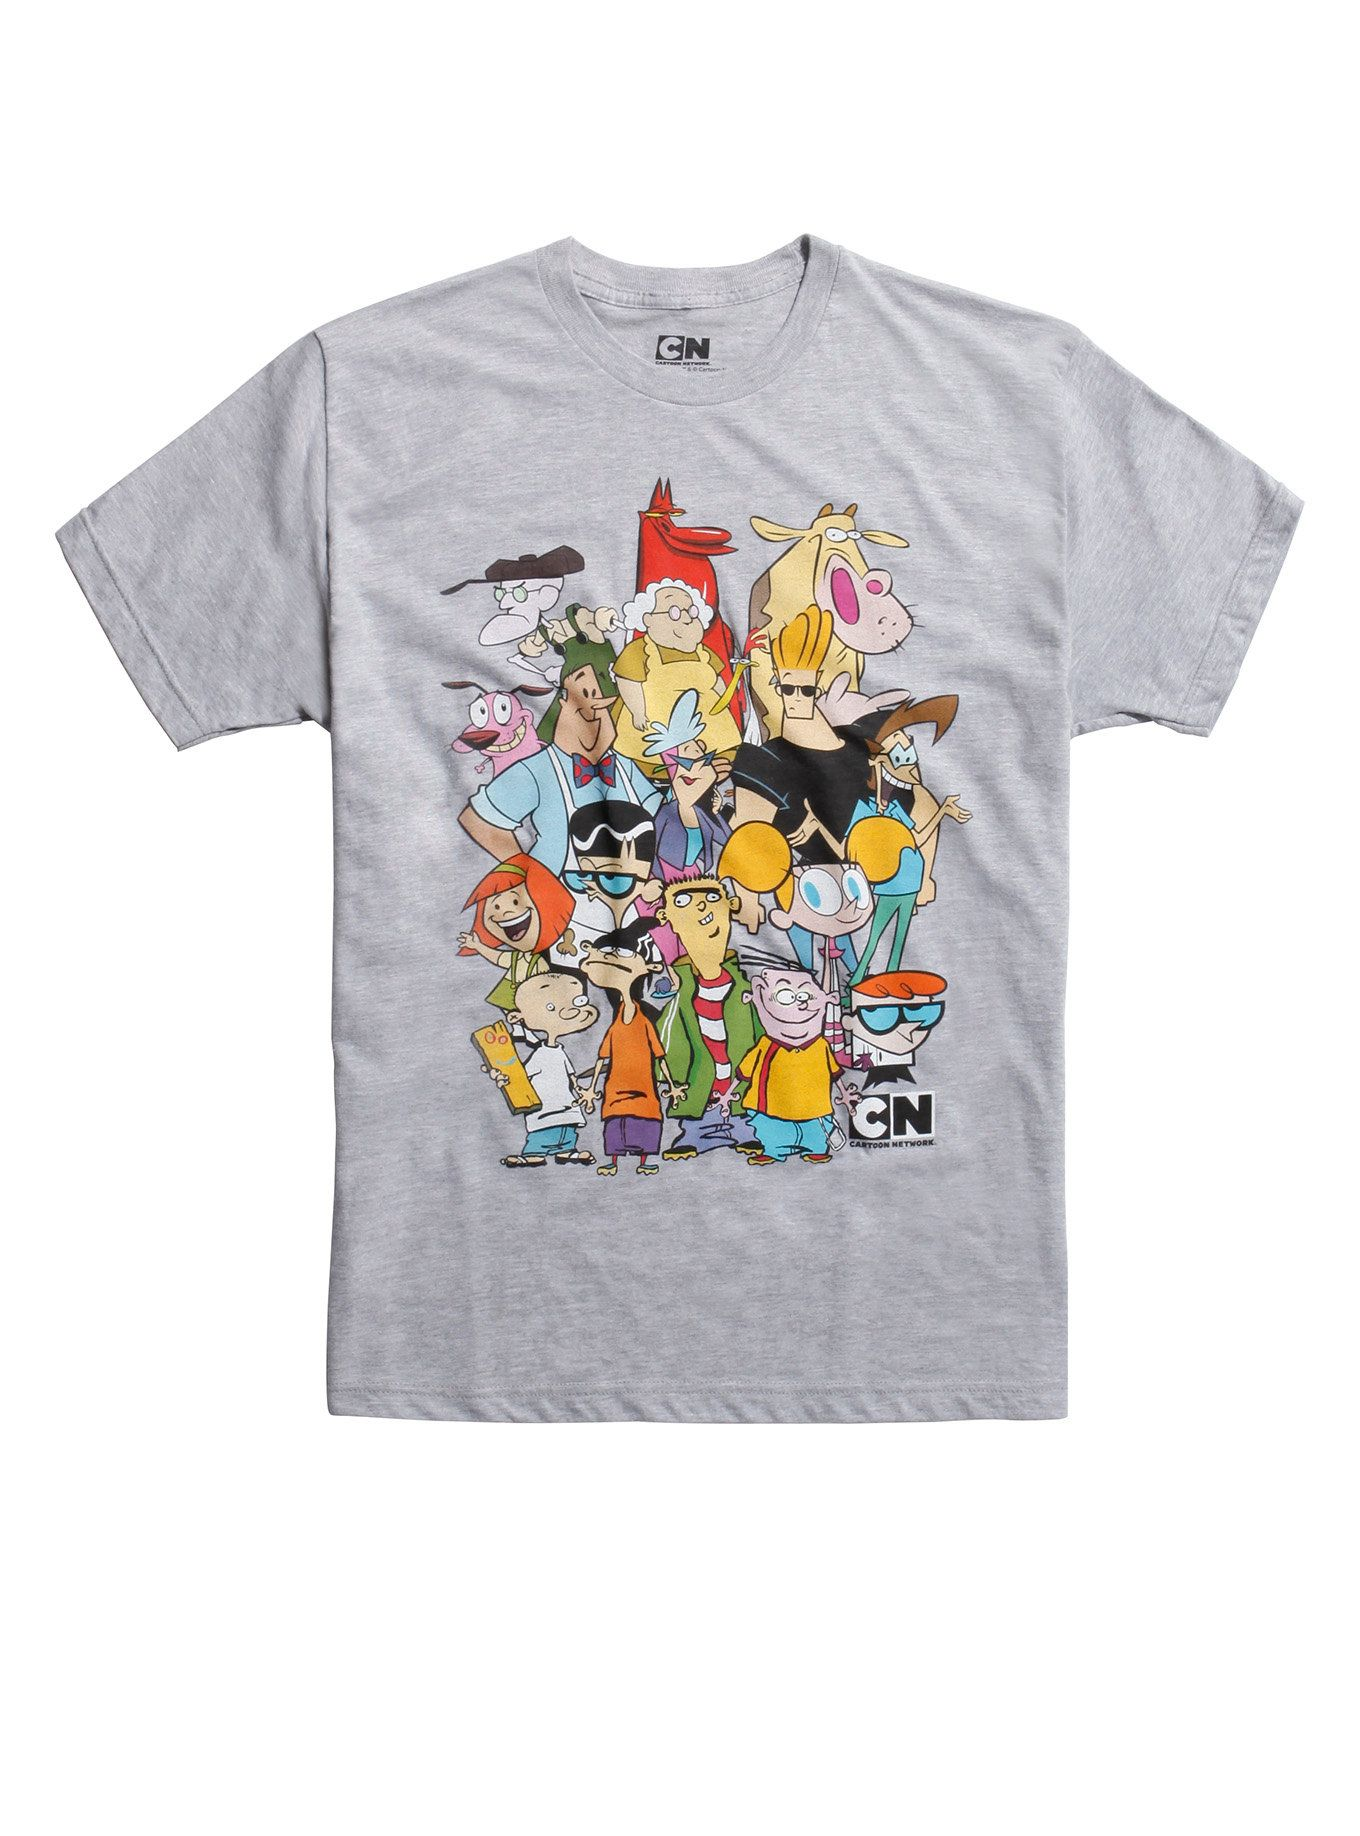 Heather grey T-shirt from Cartoon Network with a large collage design on  front featuring all of your favorite characters from days of yore ffefb3343616